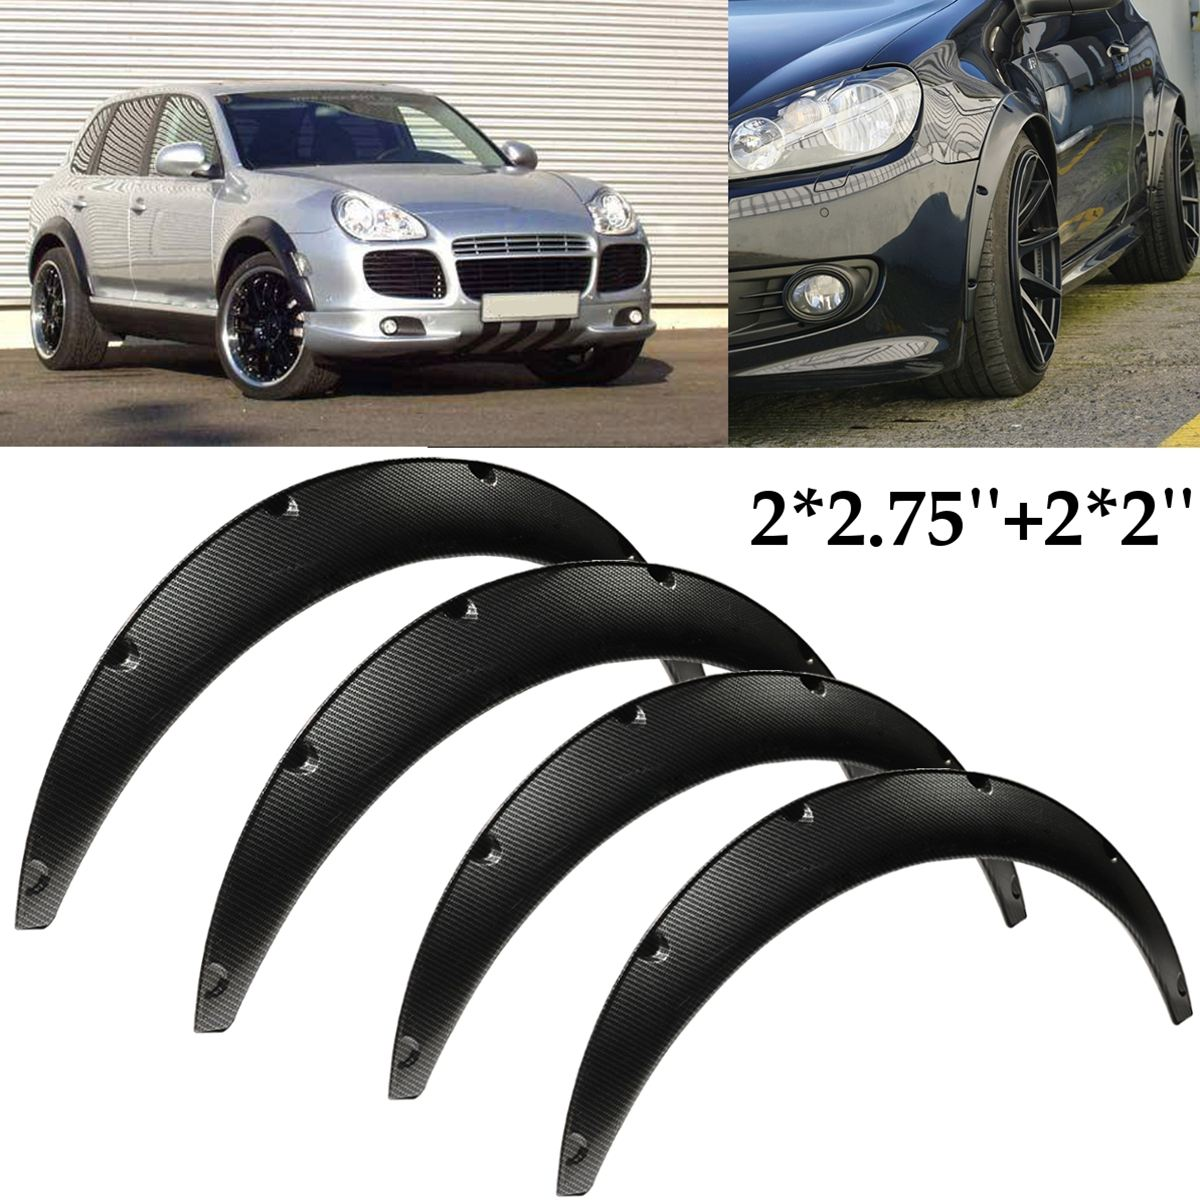 цена Carbon Fiber Flexible Car Body For Fender Flares Extension Wide Wheel Arches For Mazda/Nissan RX-7 200SX 240SX 300ZX 1980-2015